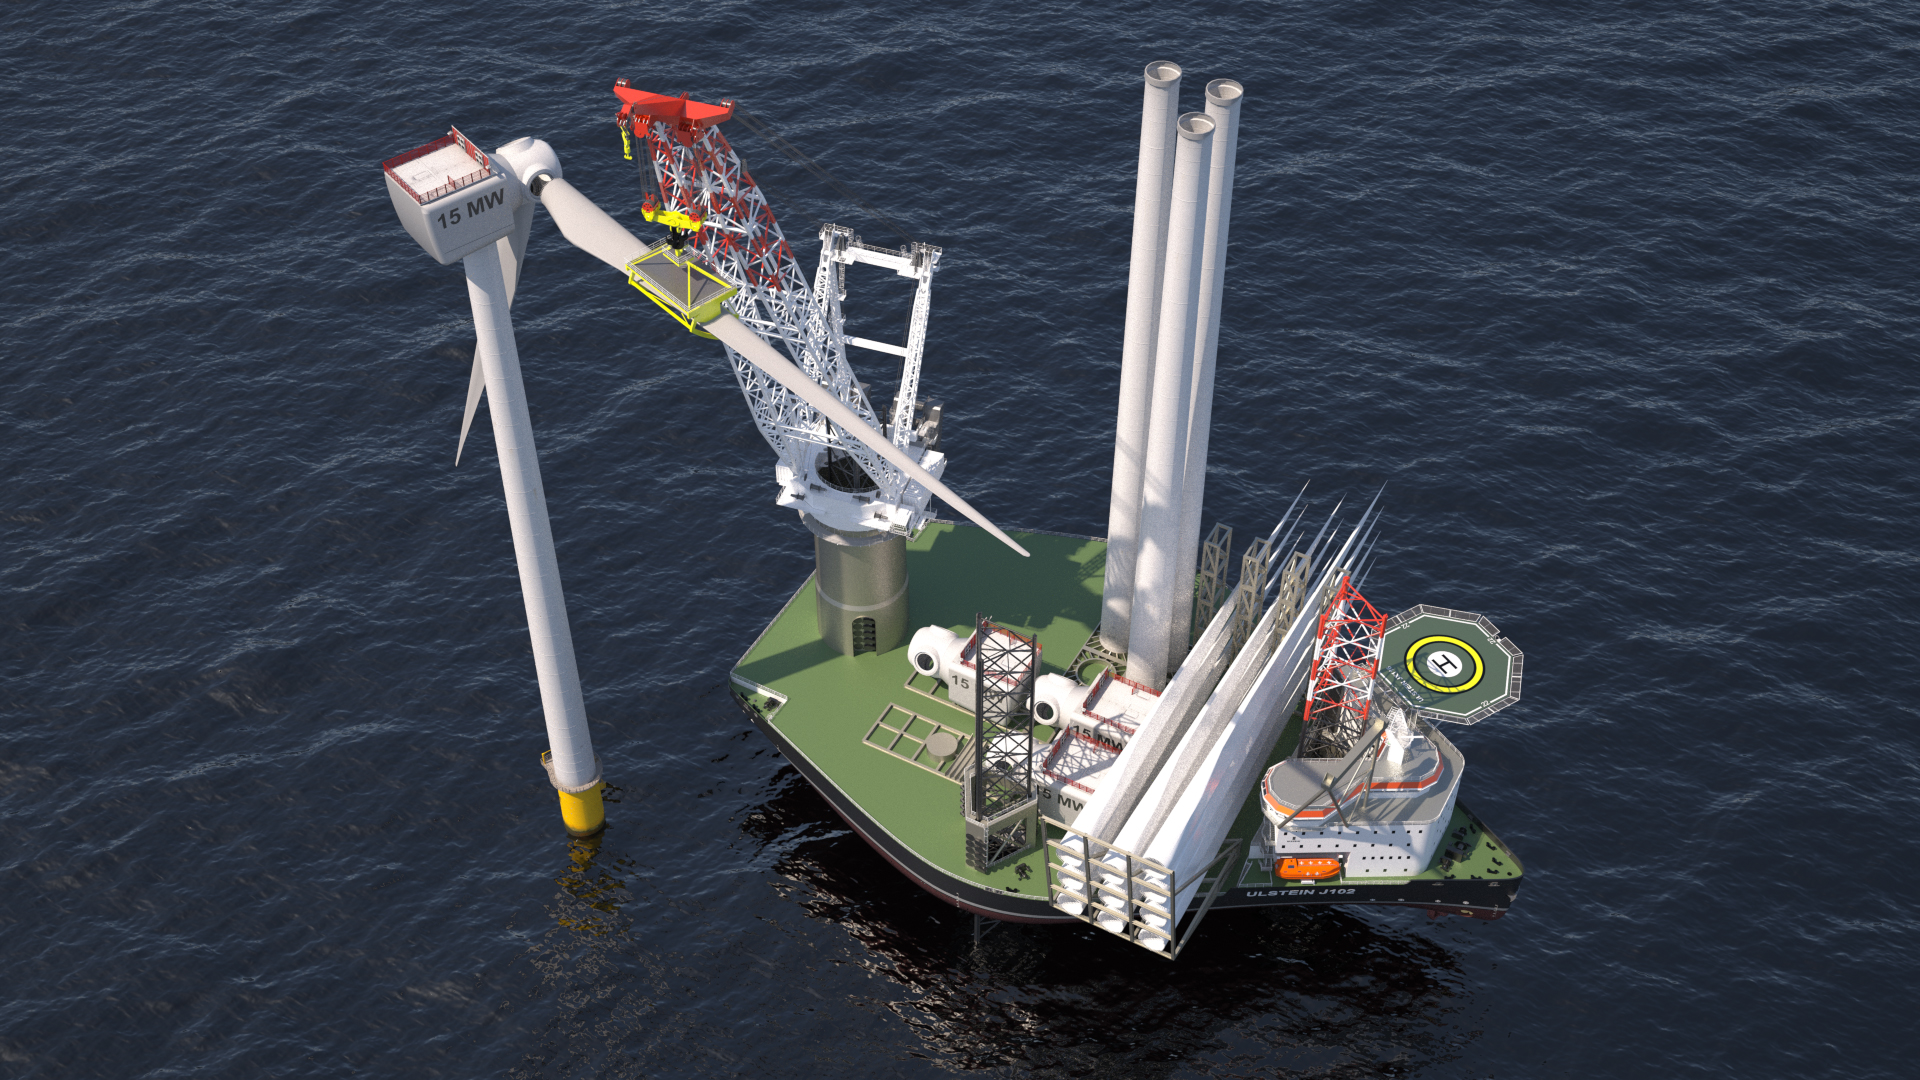 New X-JACK design for jack-up vessels to strengthen Ulstein's ambitions in offshore wind